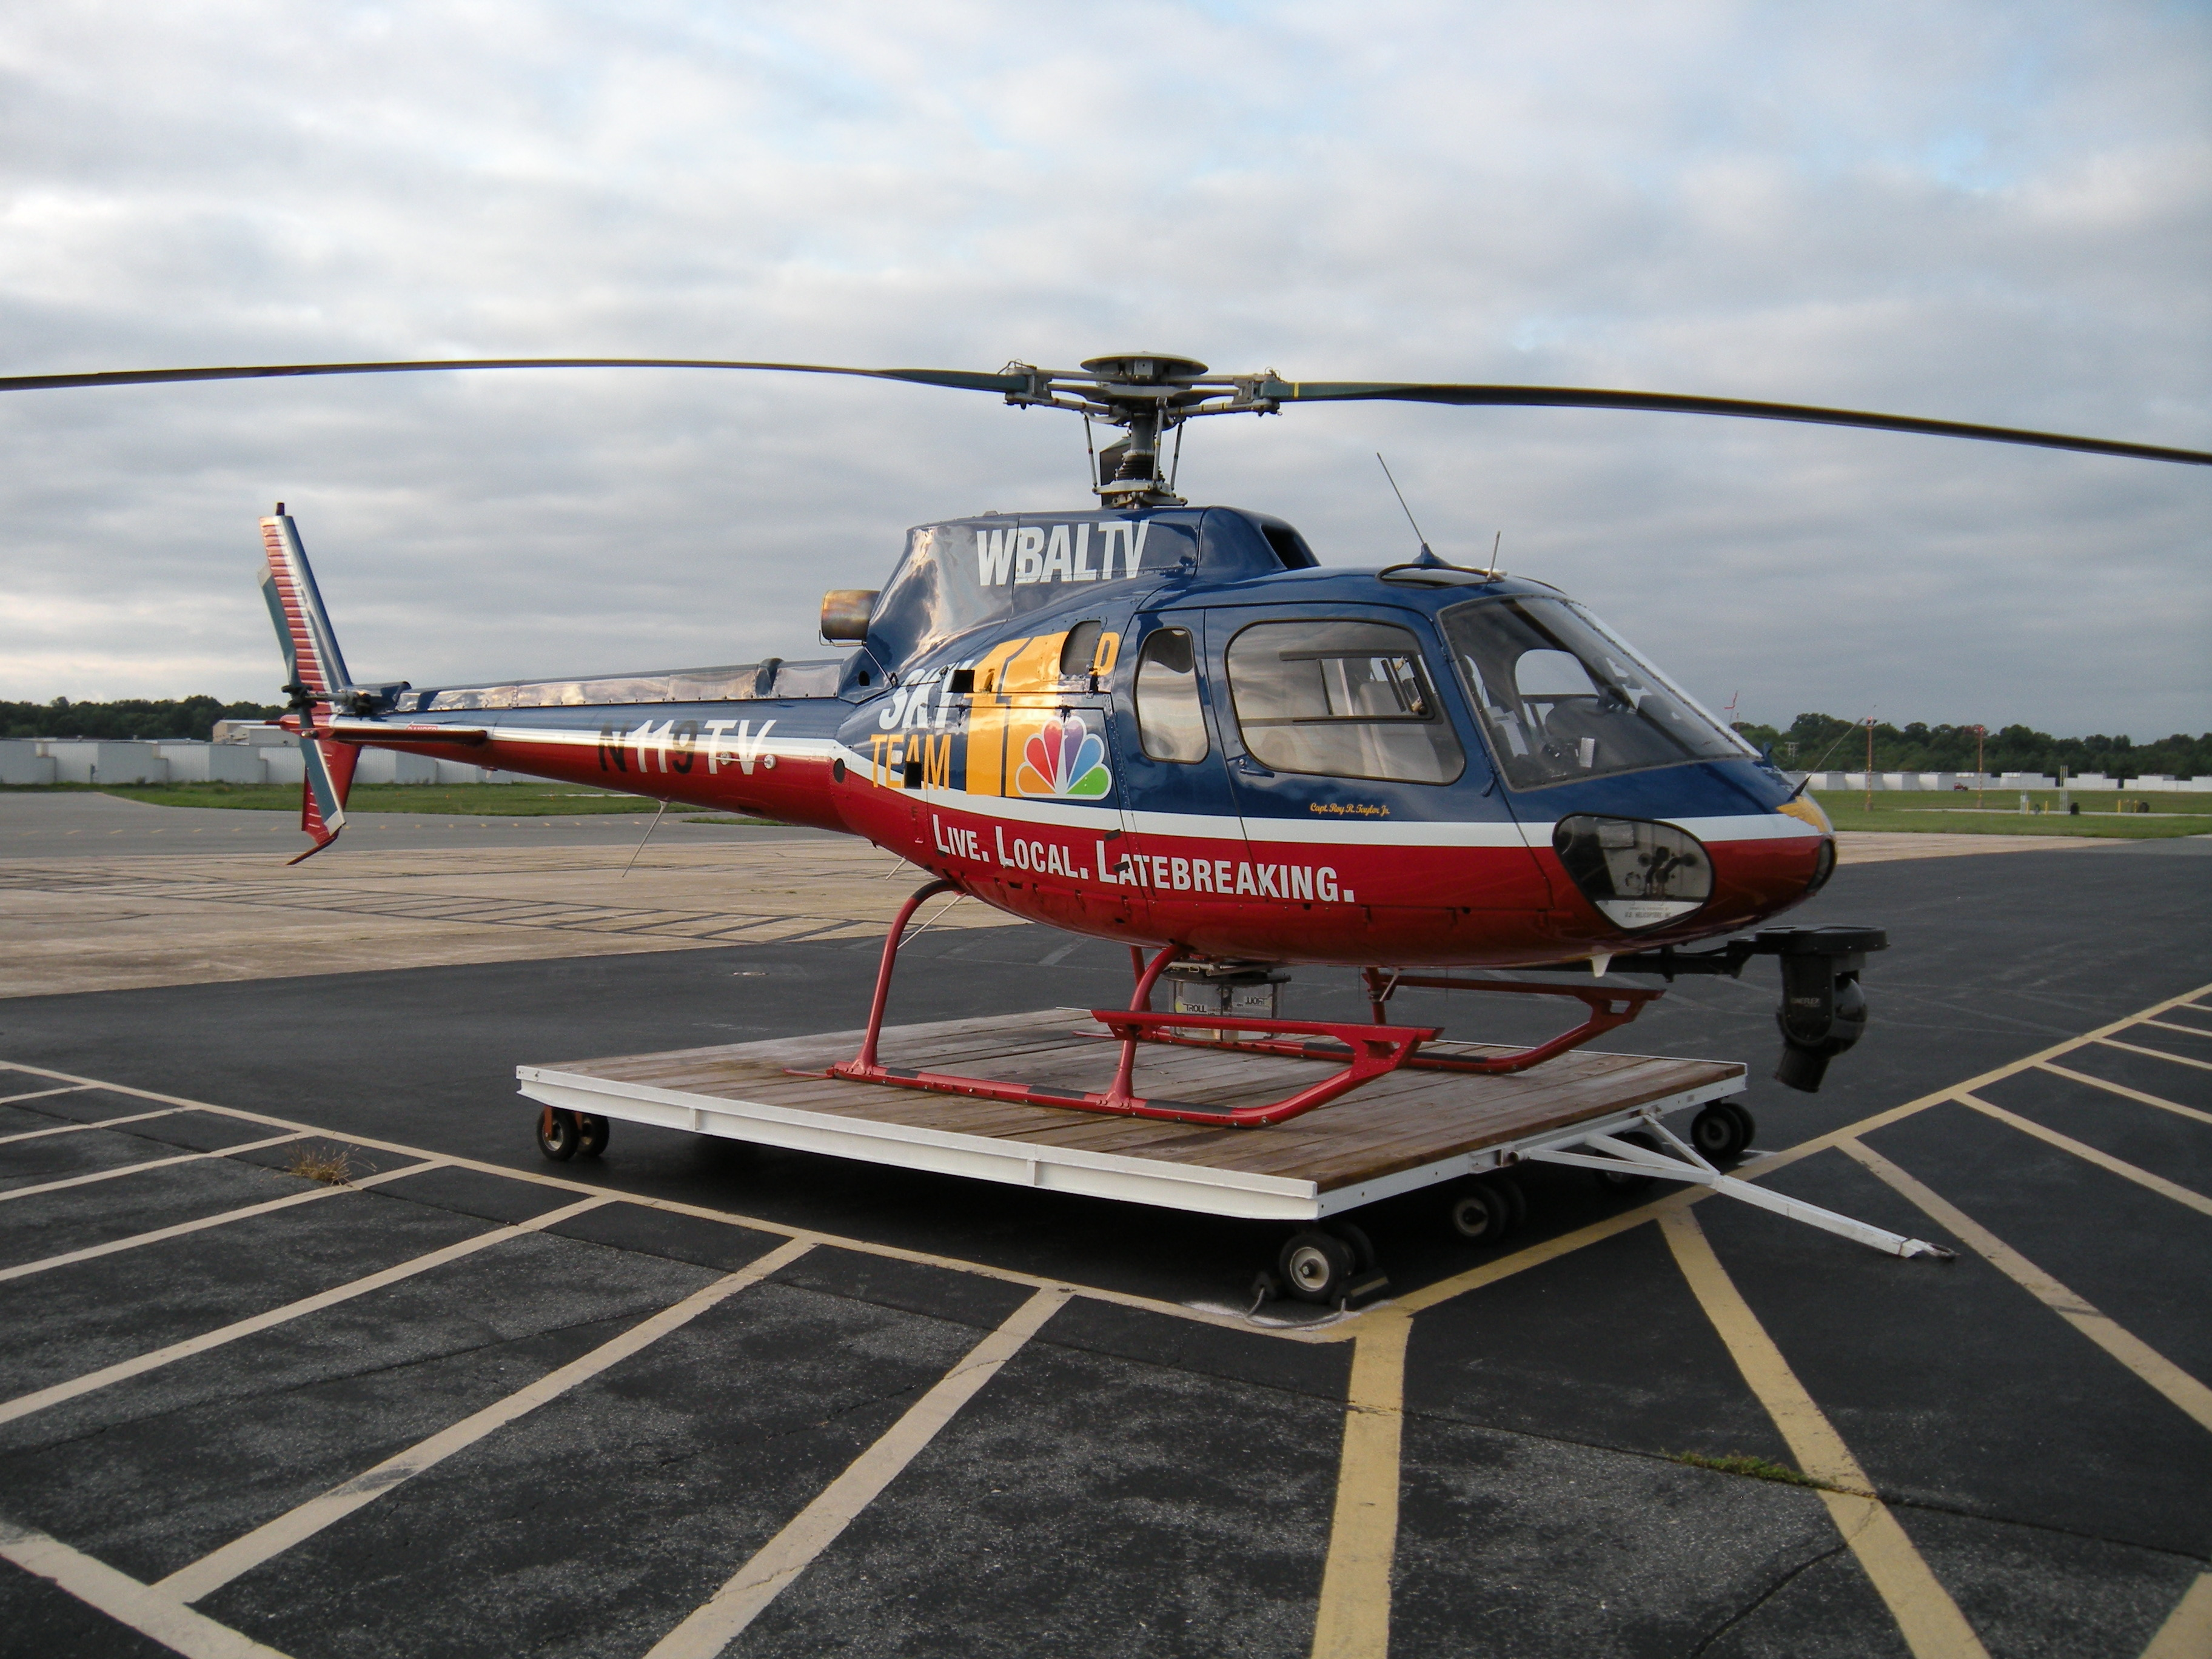 SINGLE-ENGINED 'SINGLE-ENGINED 'Eurocopter_AS550_C2_Fennec'